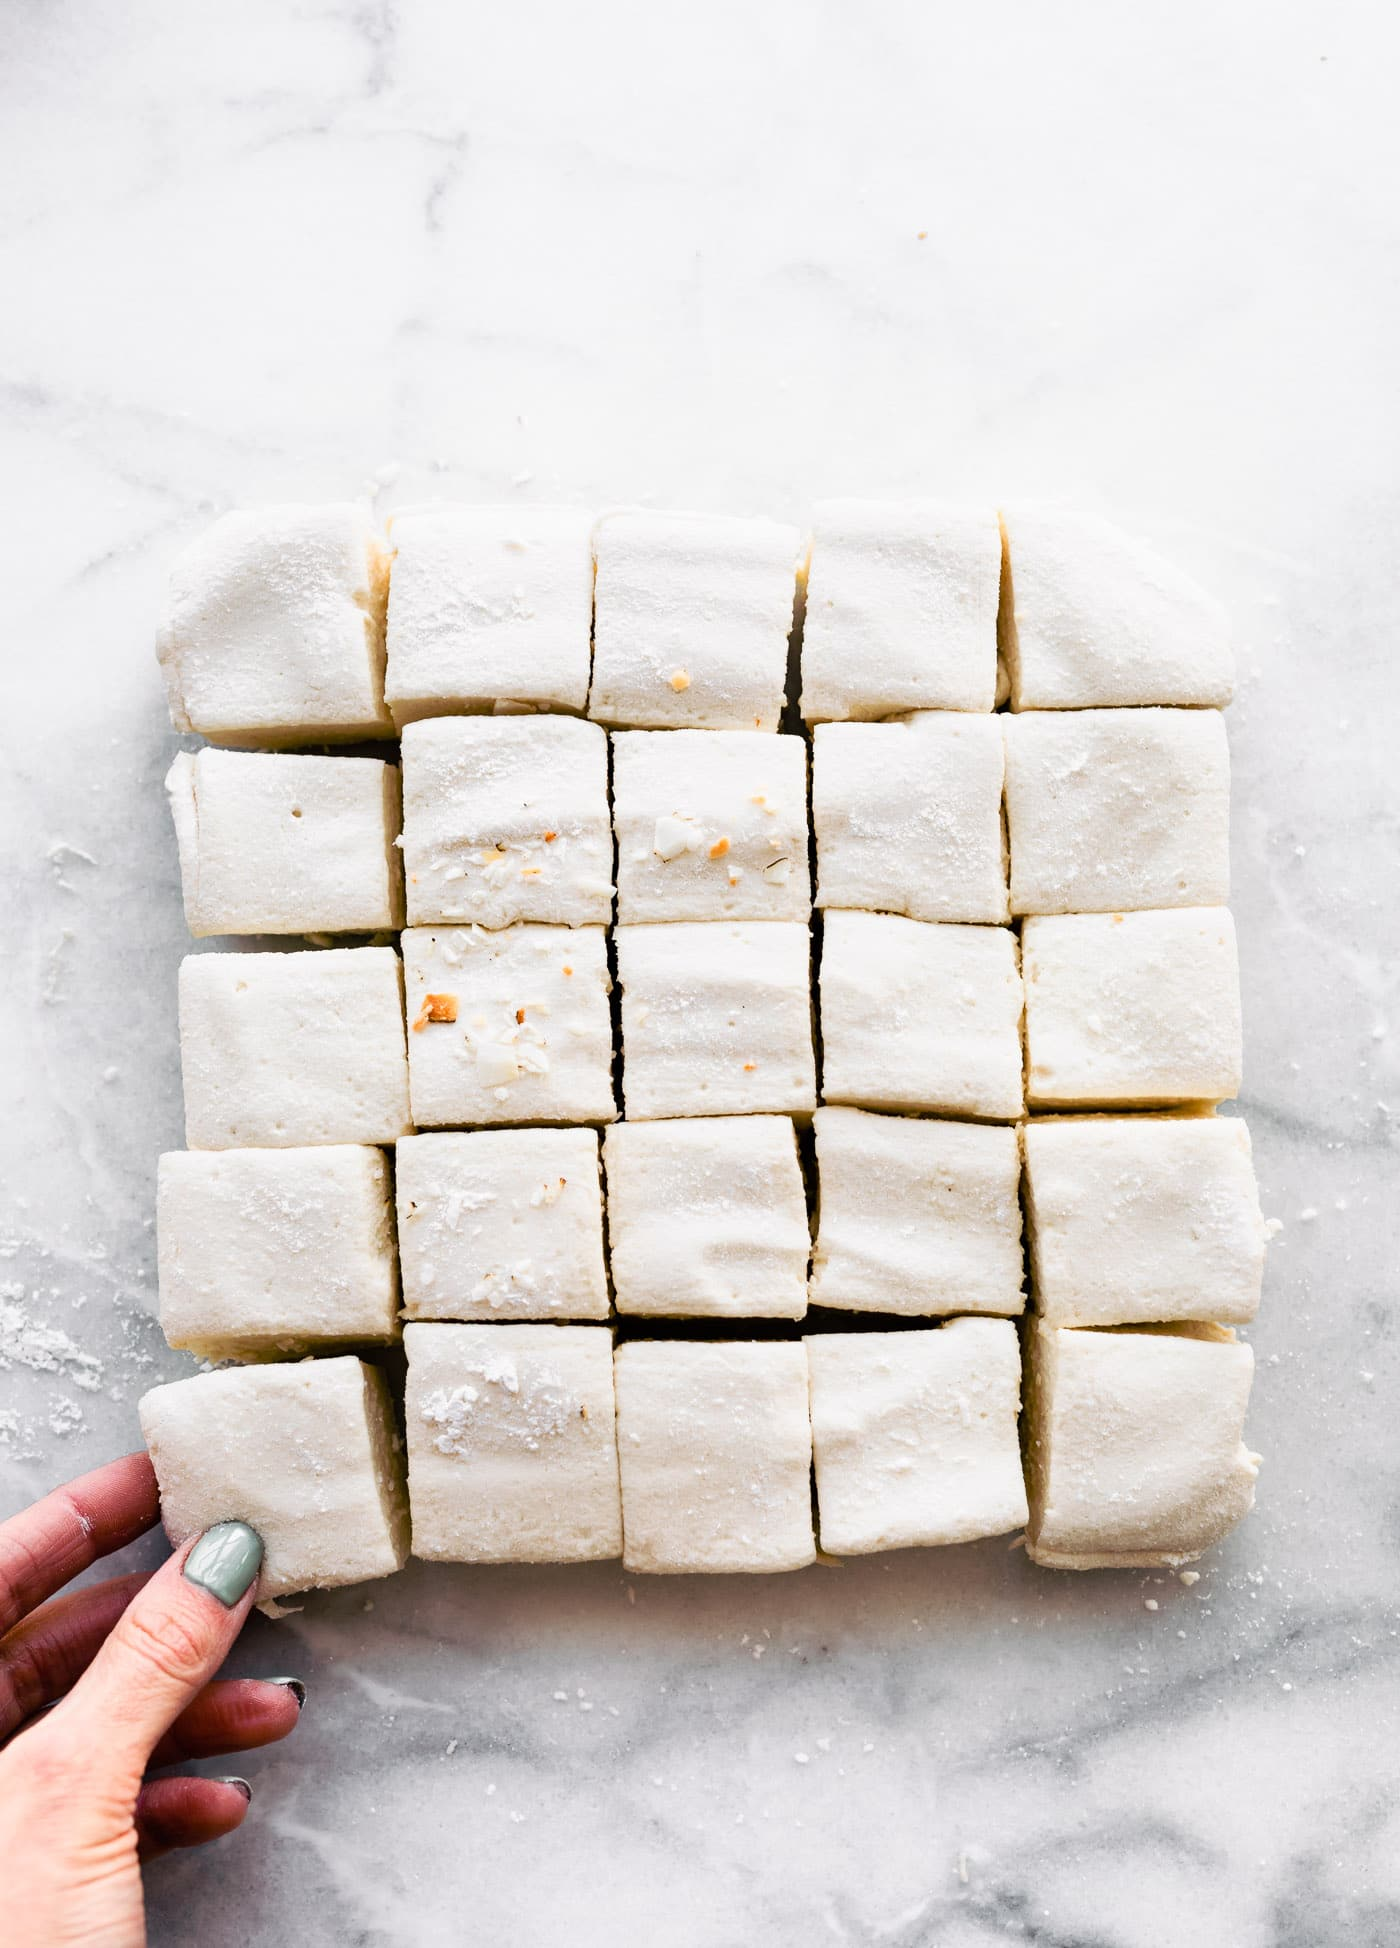 Overhead image of homemade marshmallows cut into 1-1/2 inch squares. Hand is pulling one away.